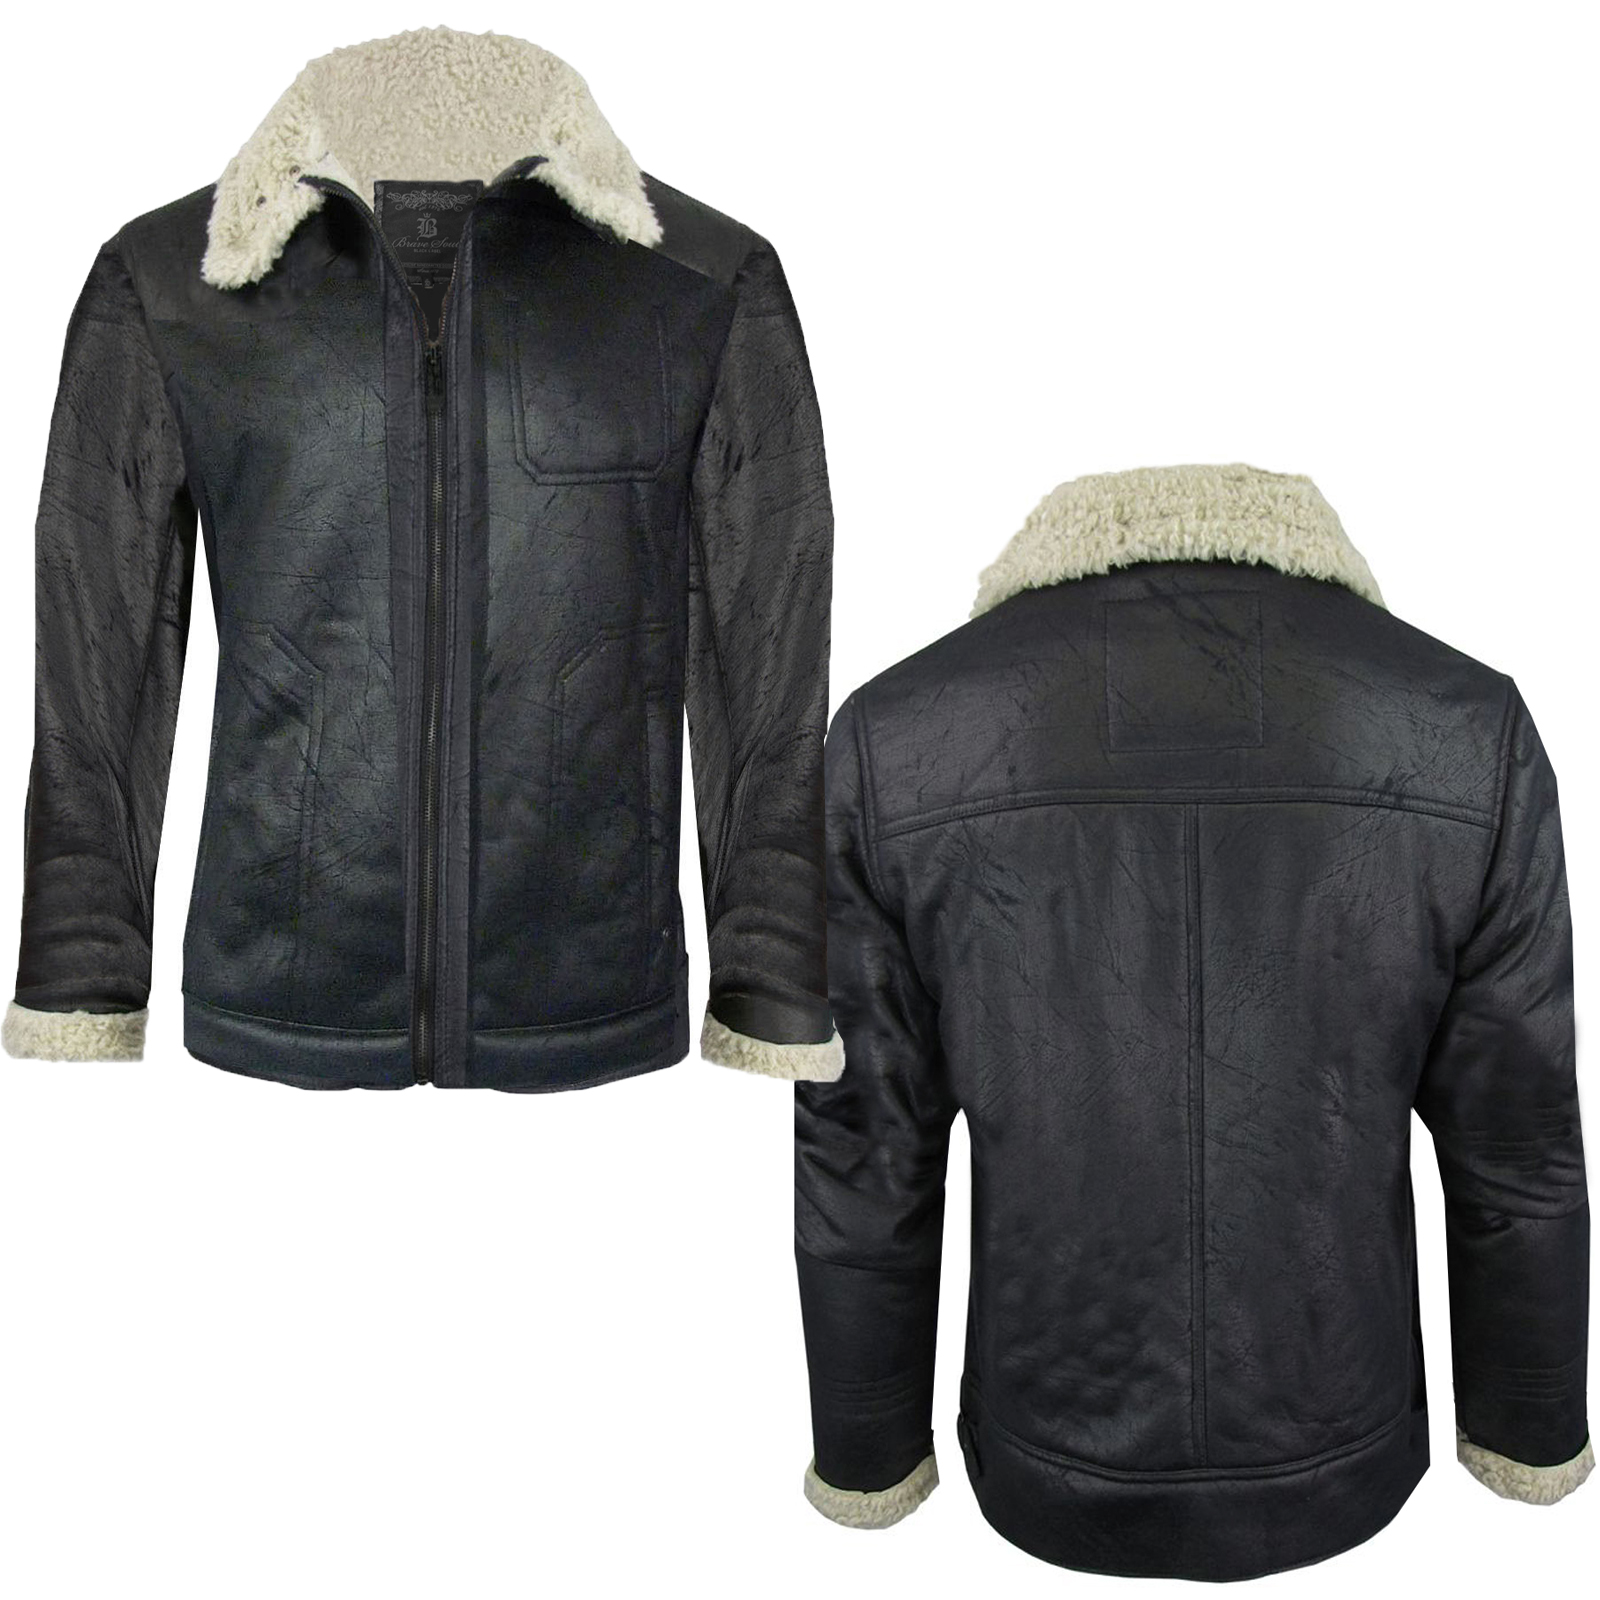 Soul leather jackets